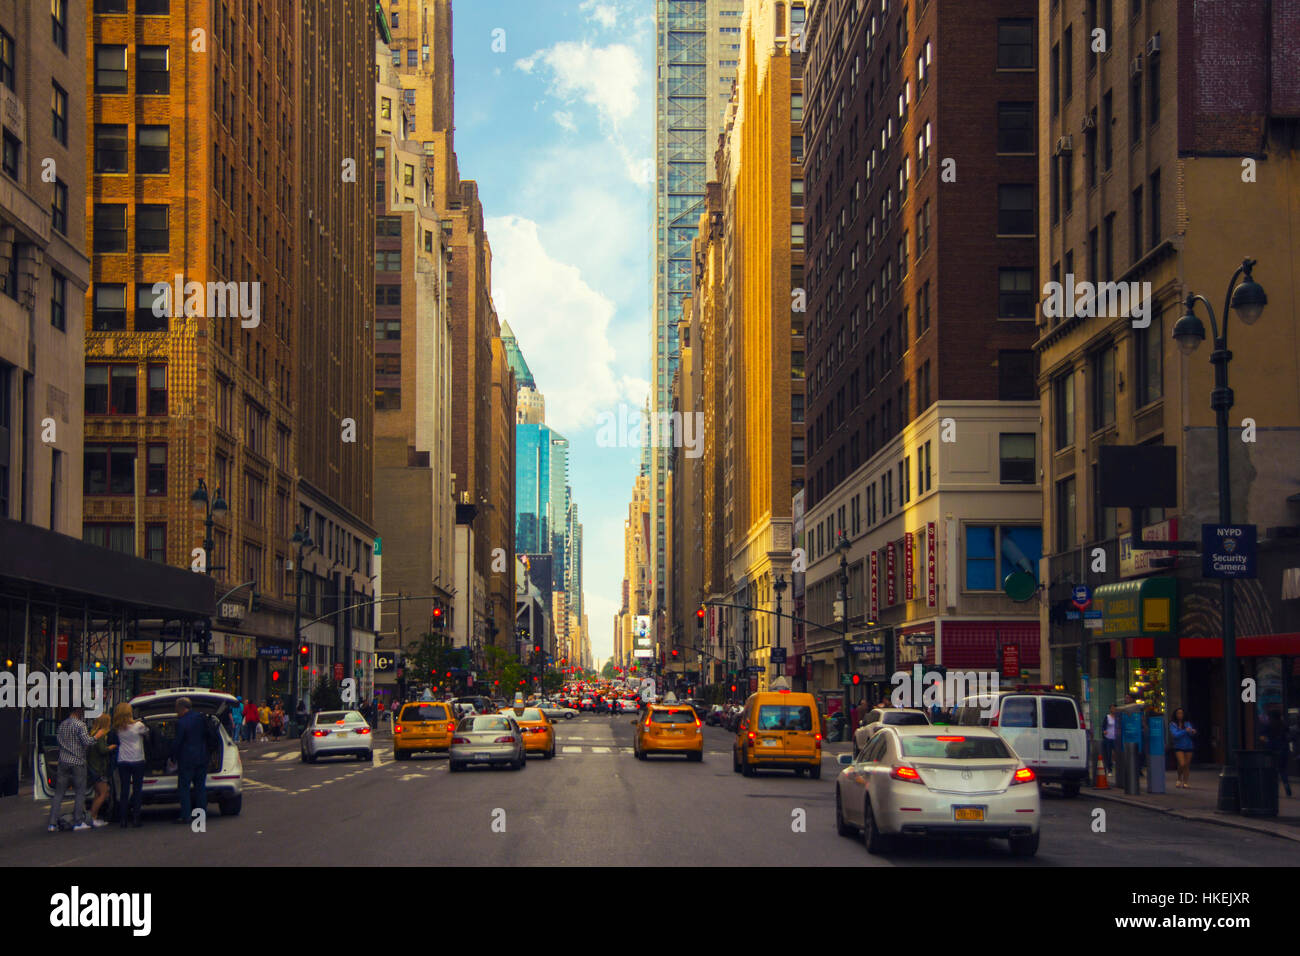 Colorful Vibrant New York Street Perspective View Stock Photo